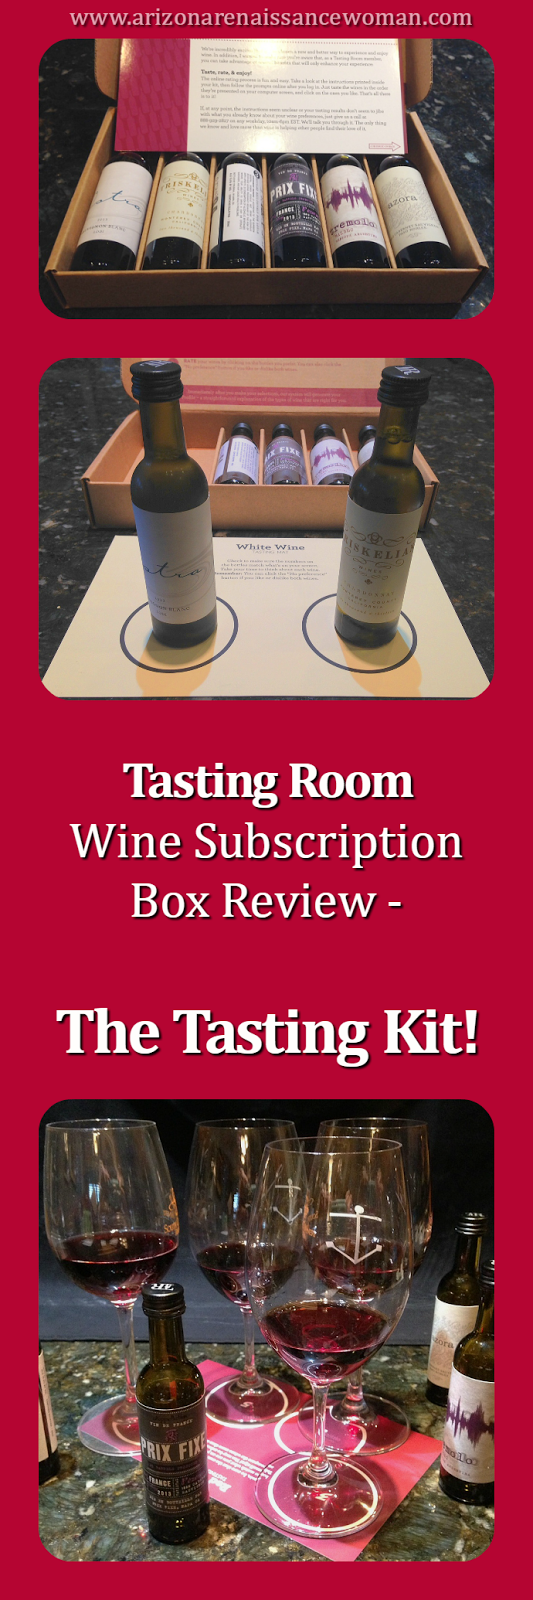 Tasting Room Wine Subscription Box Review - The Tasting Kit - Collage